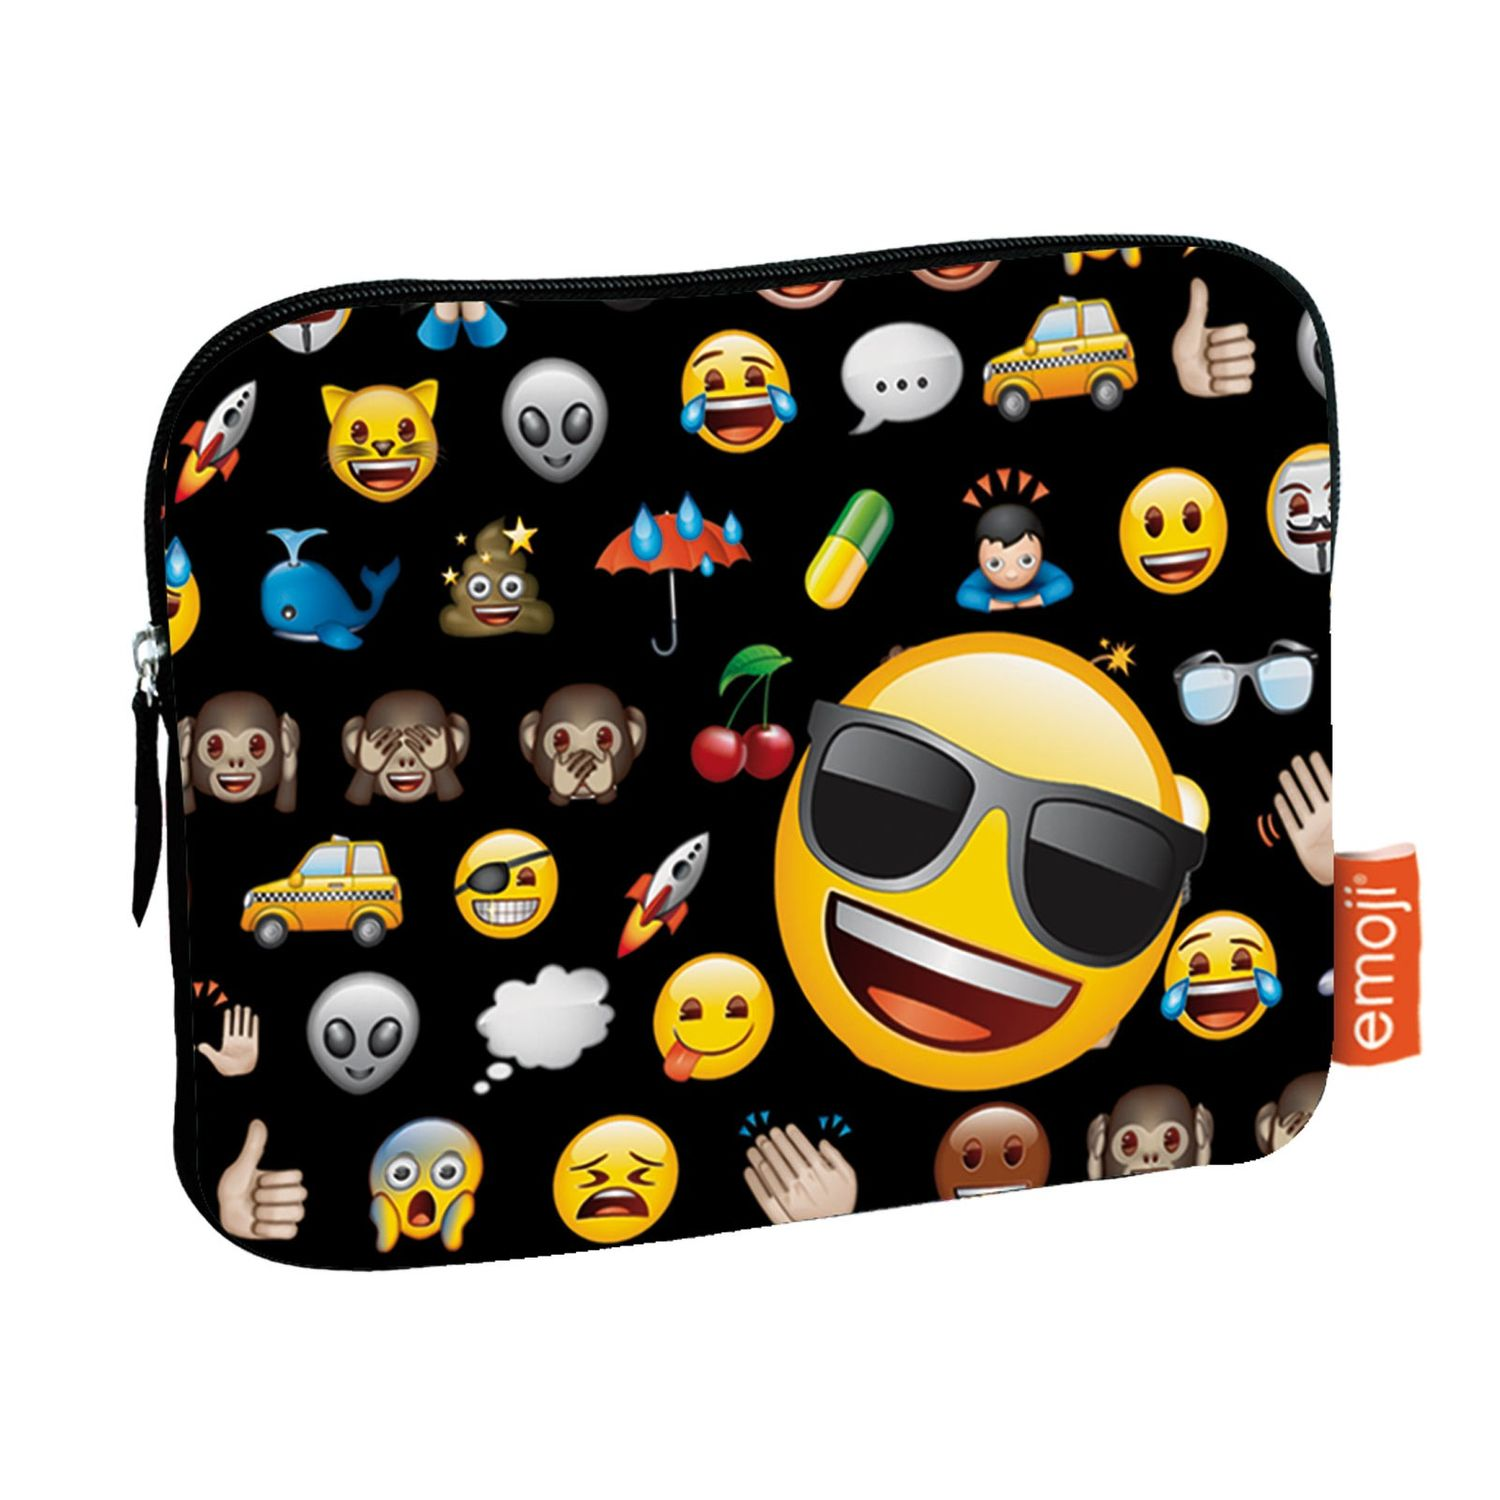 Emoji Smile Tablet Sleeve Case